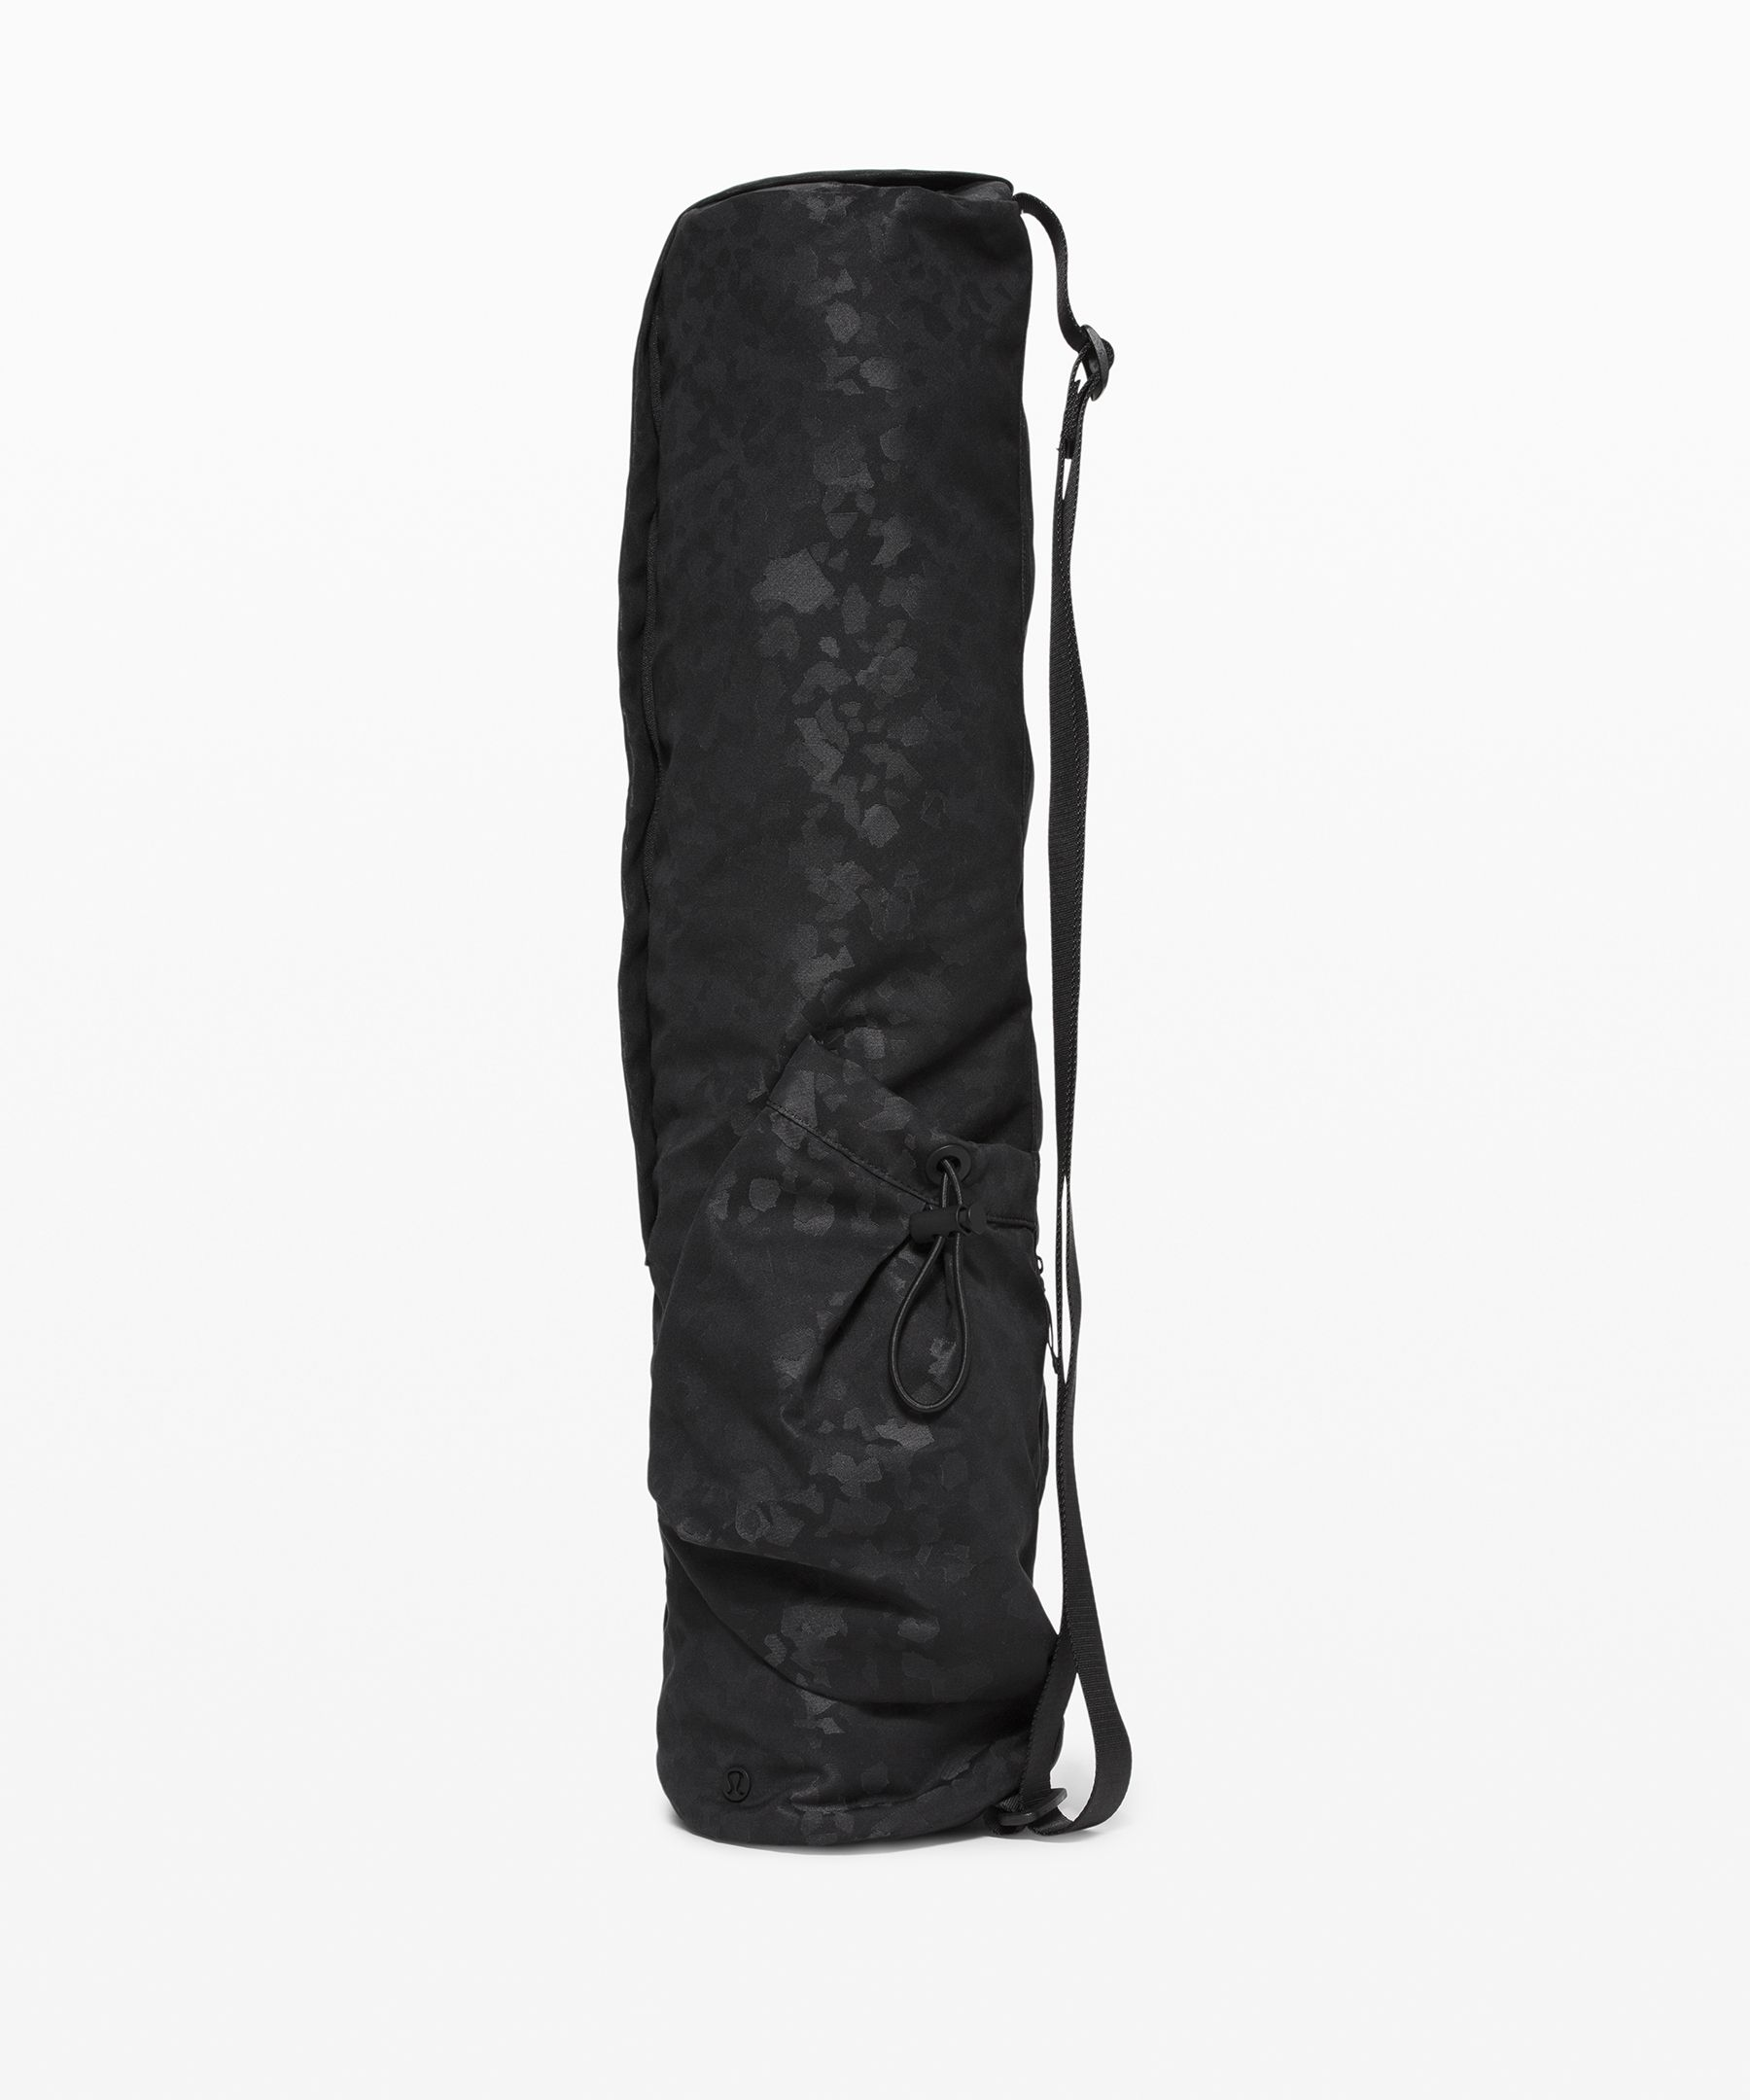 lululemon yoga bag